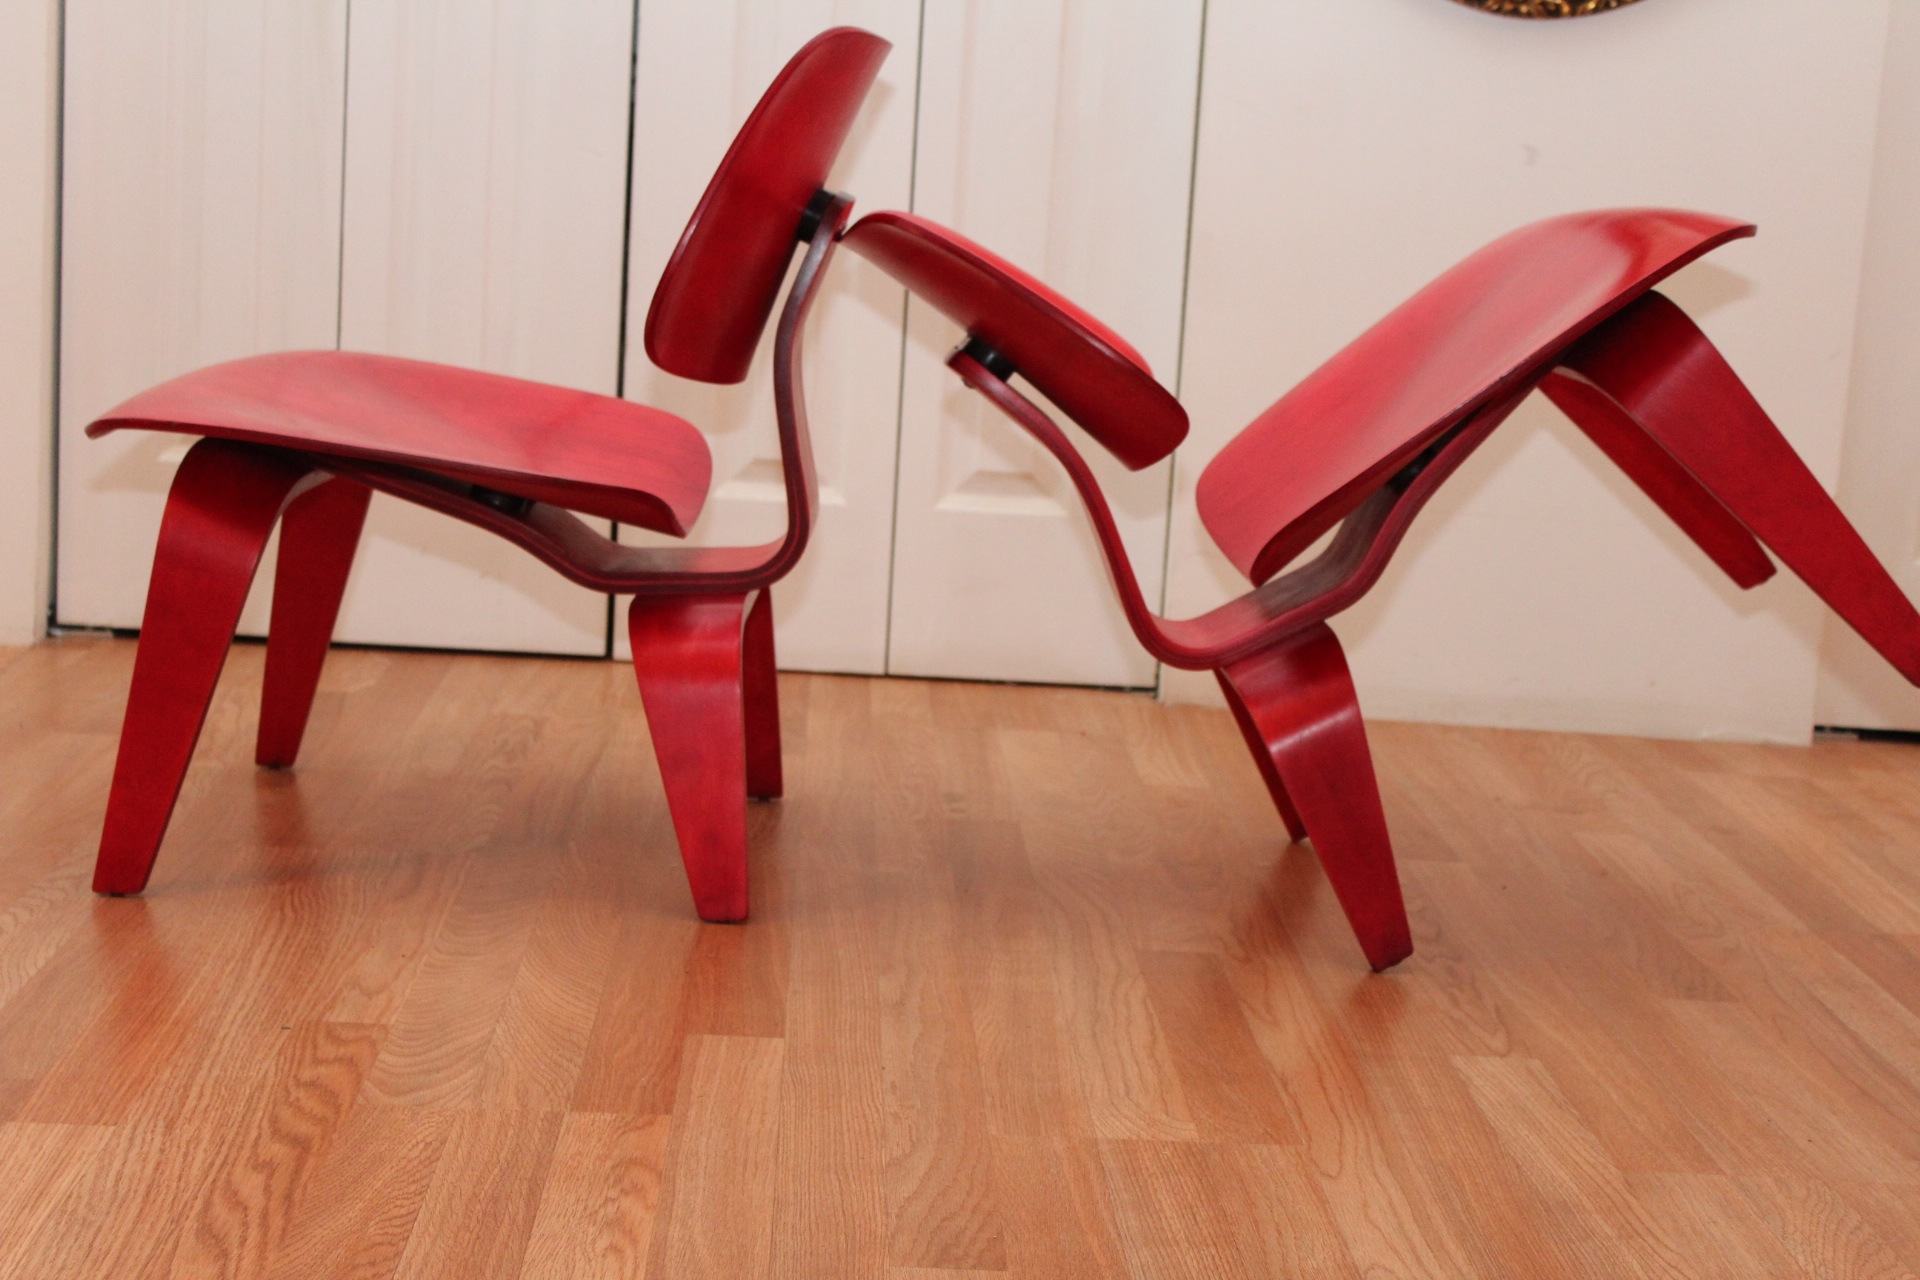 & Pair of Charles u0026 Ray Eames LCW Chairs